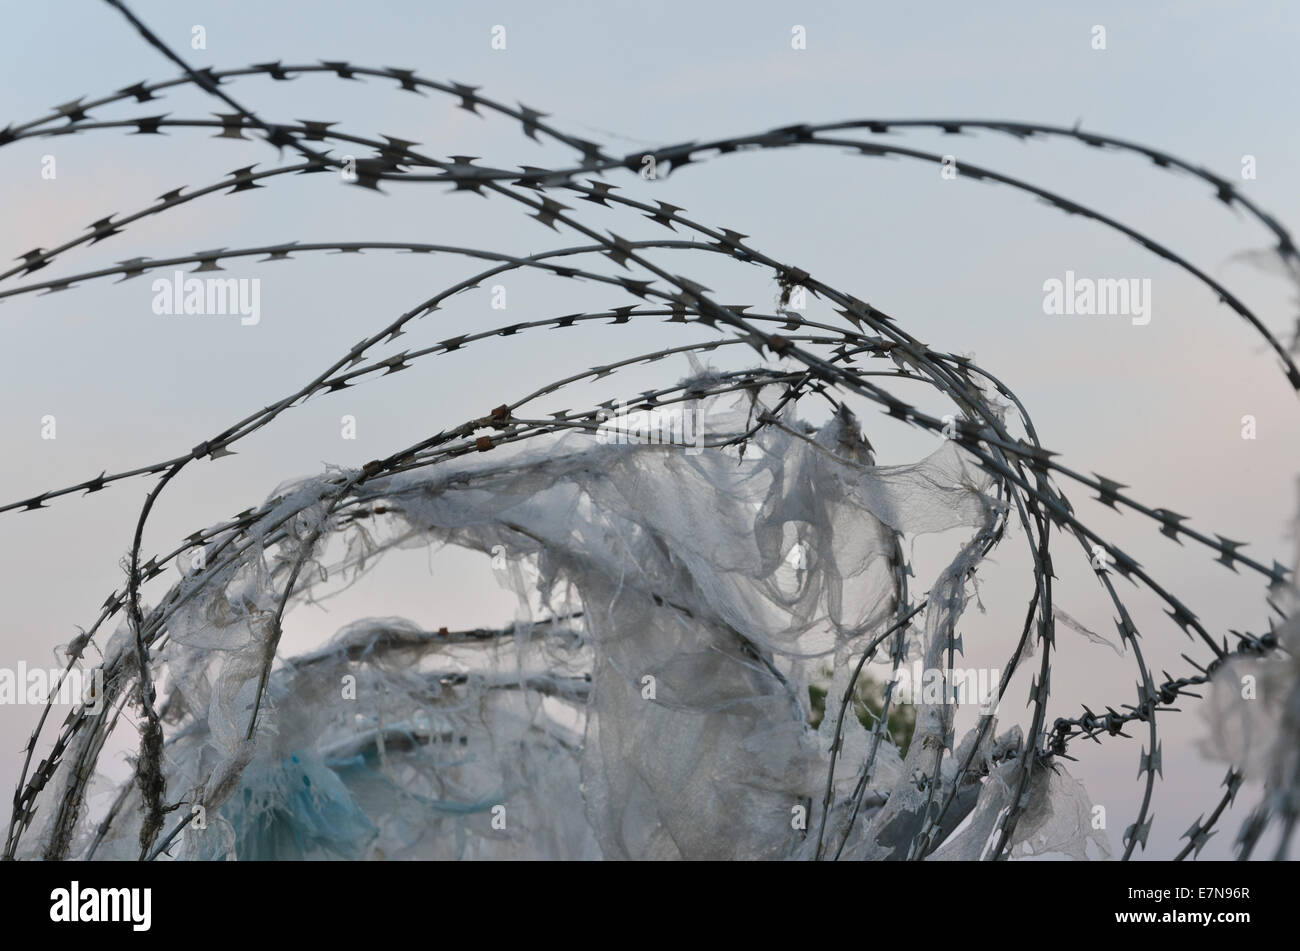 Razor Wire Cut Out Stock Photos & Razor Wire Cut Out Stock Images ...